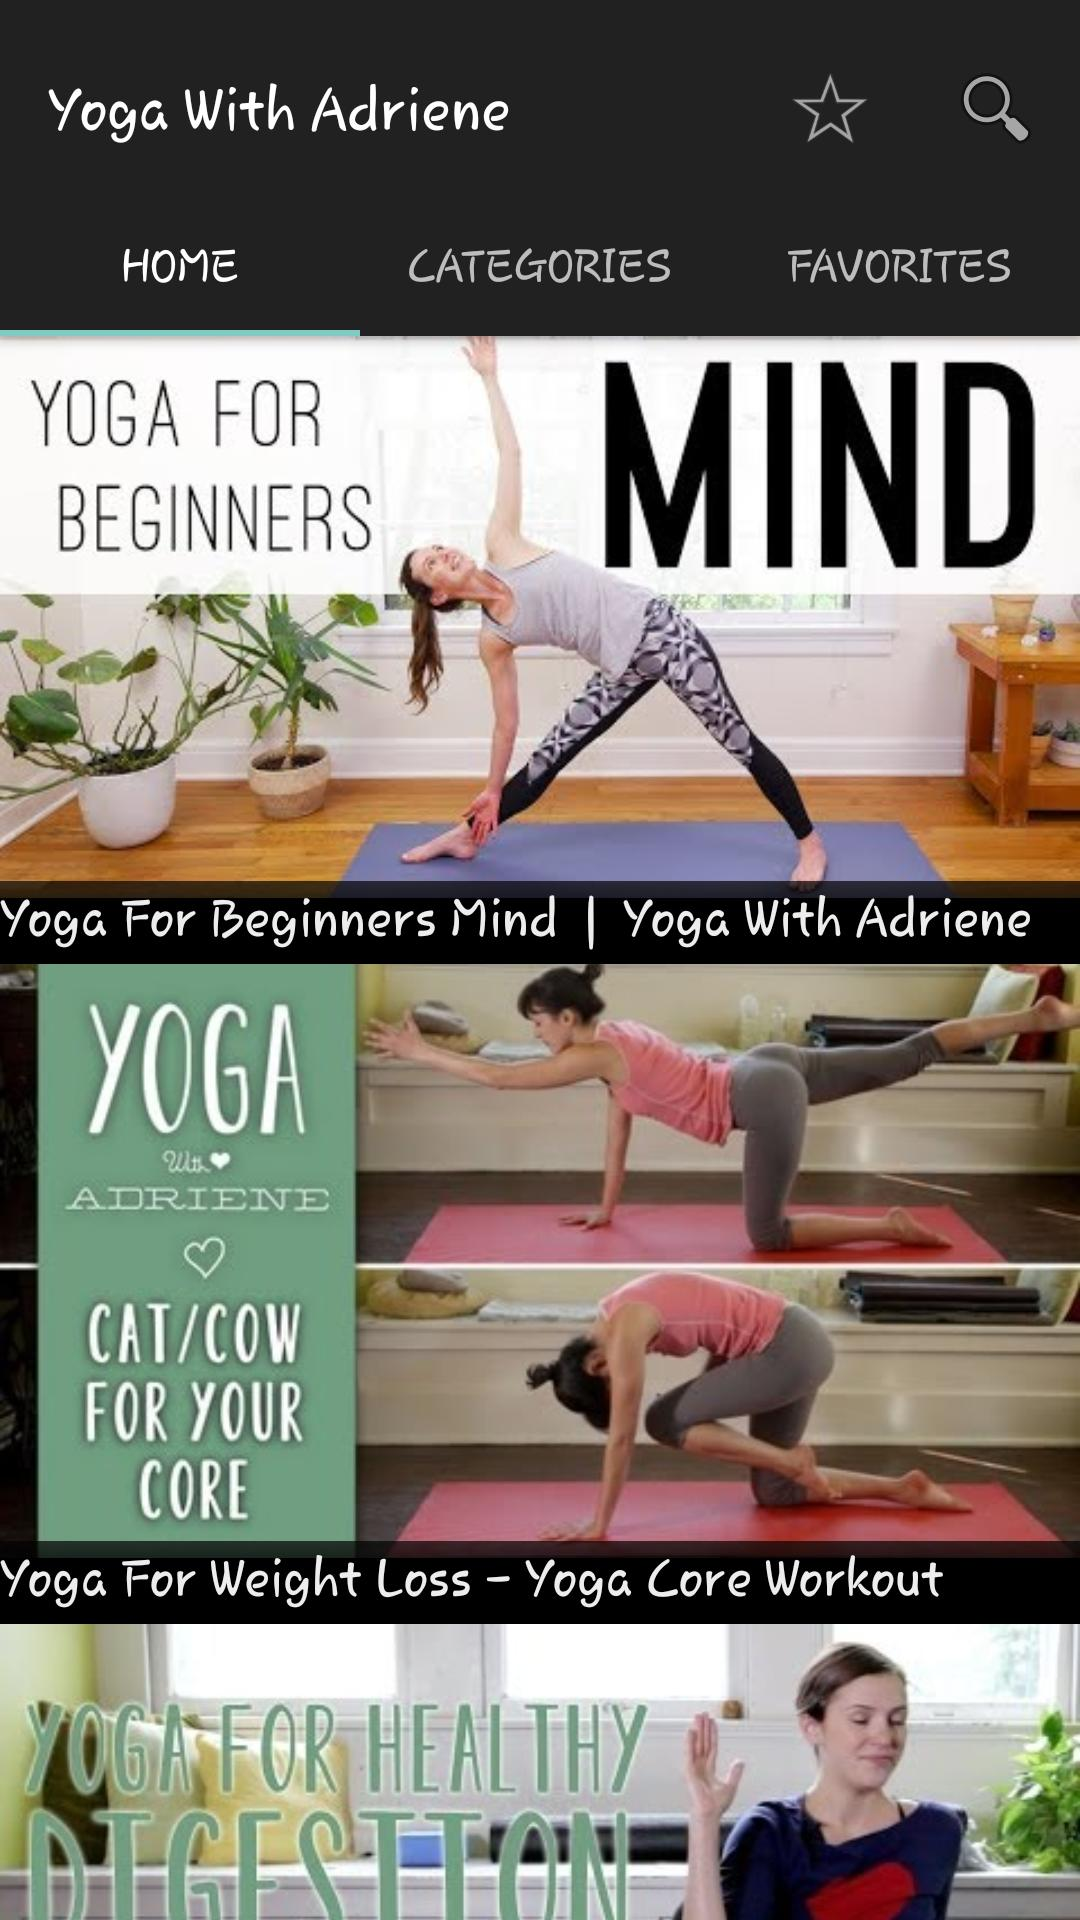 Yoga With Adriene for Android - APK Download